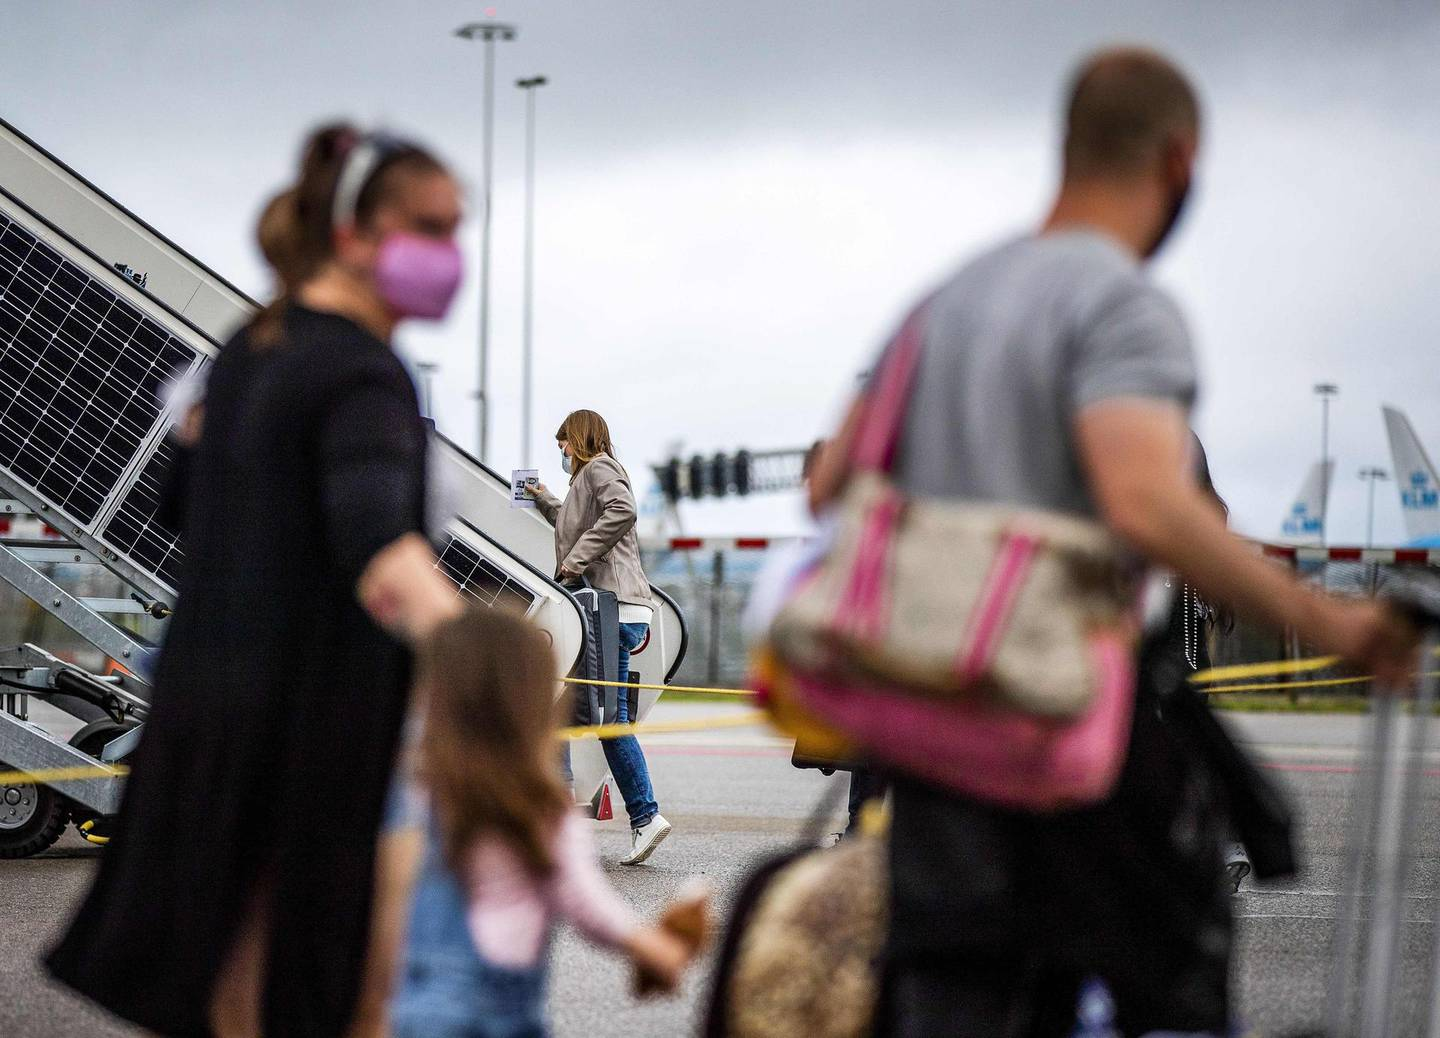 Passengers board on Easyjet airplane at the Amsterdam-Schiphol Airport, The Netherlands, on  July 1, 2020.  EasyJet airlines resume flights to and from Amsterdam-Schiphol Airport after a period of no flying due to the coronavirus. - Netherlands OUT  / AFP / ANP / Remko DE WAAL